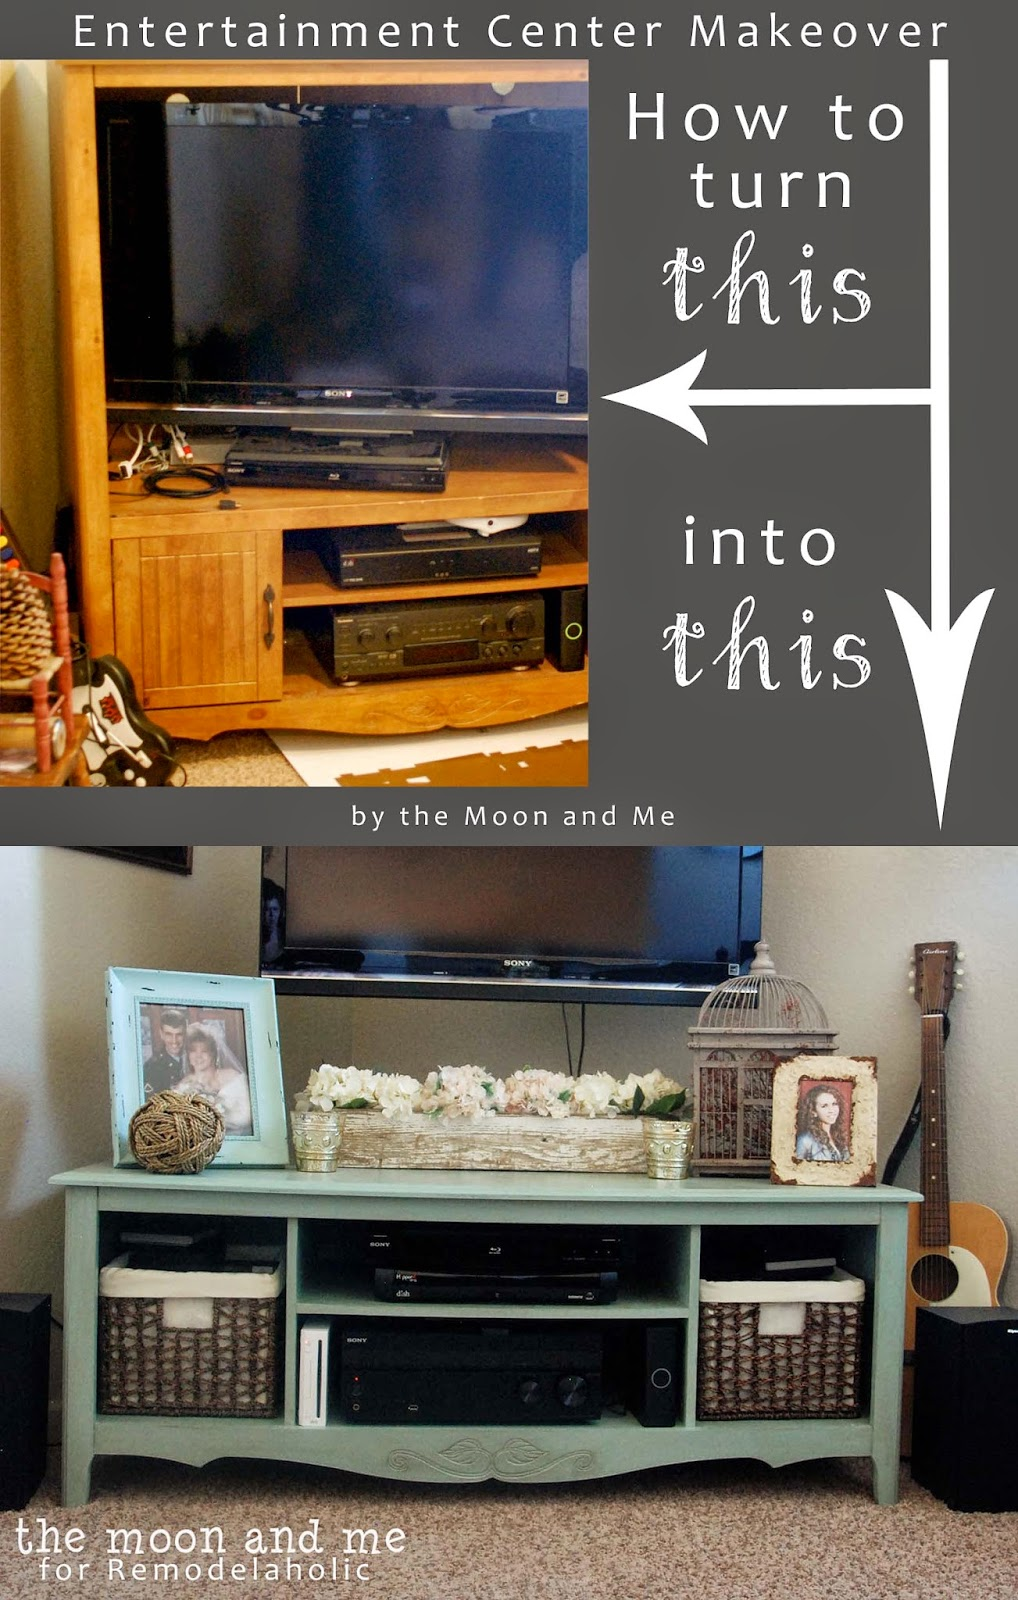 Ideas For Decorating Around A Flat Screen Tv Remodelaholic 95 Ways To Hide Or Decorate Around The Tv